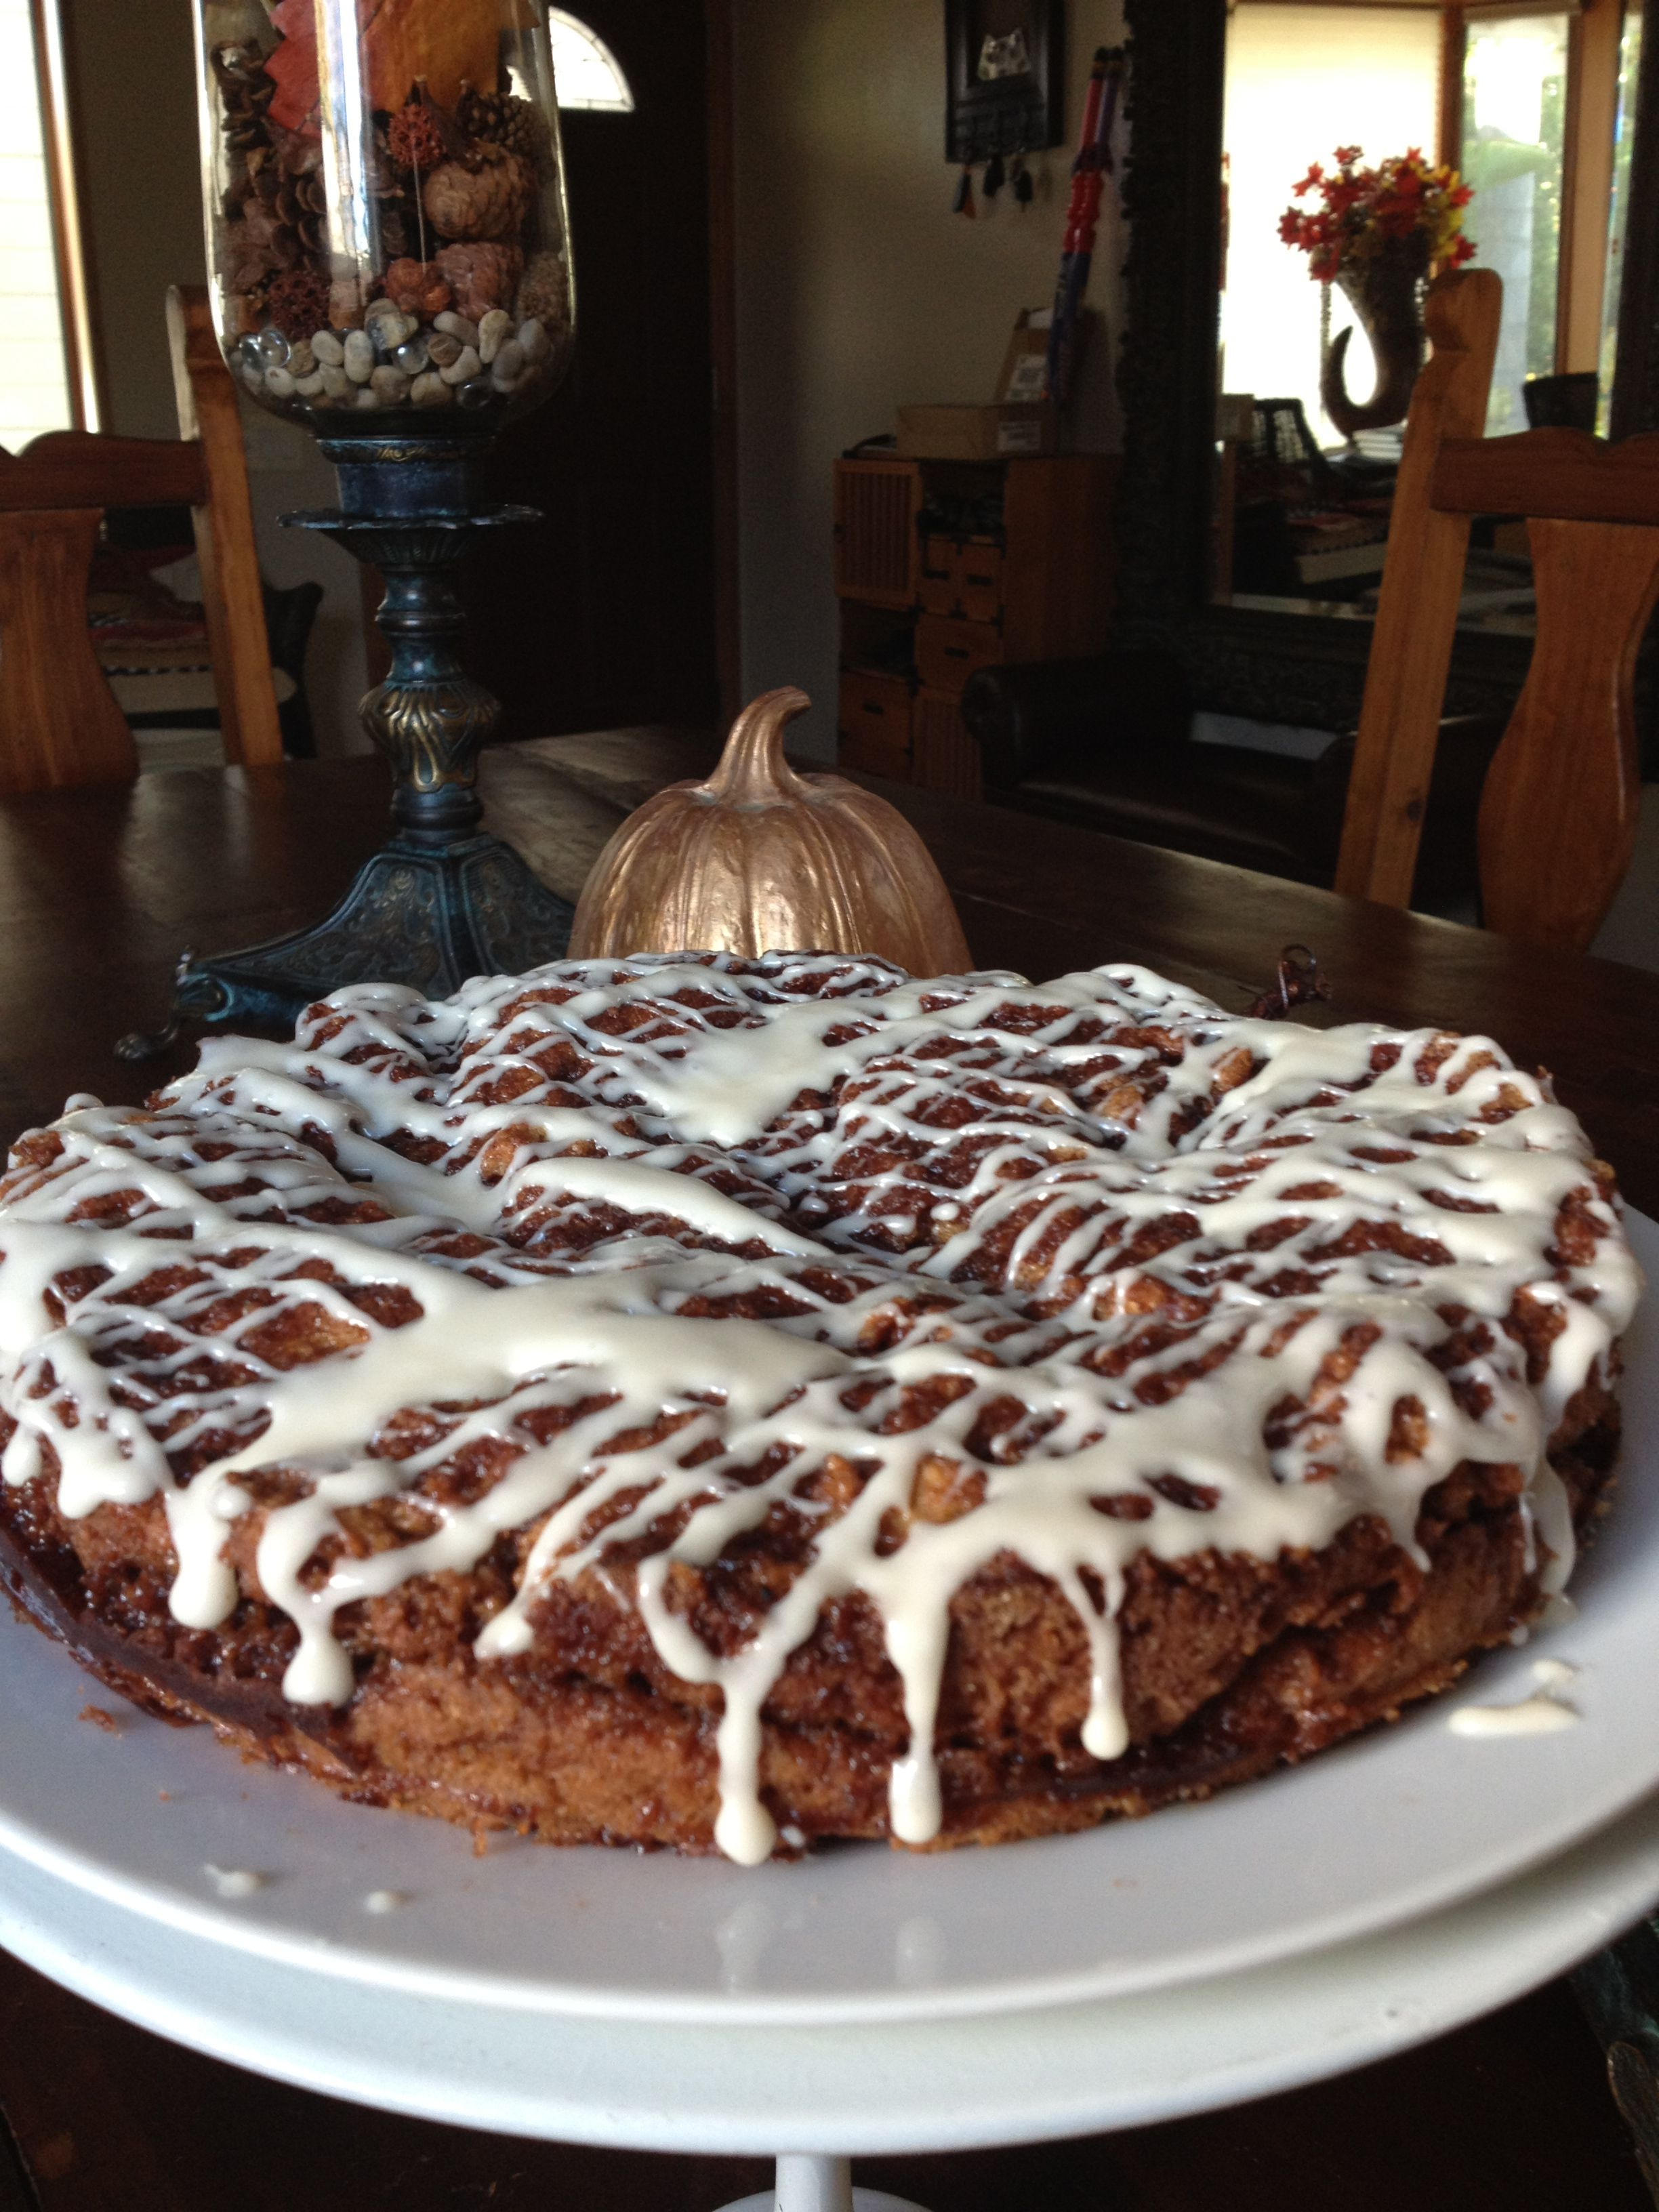 I Made It Candace Creations Gluten Free Coffee Cake With Maple